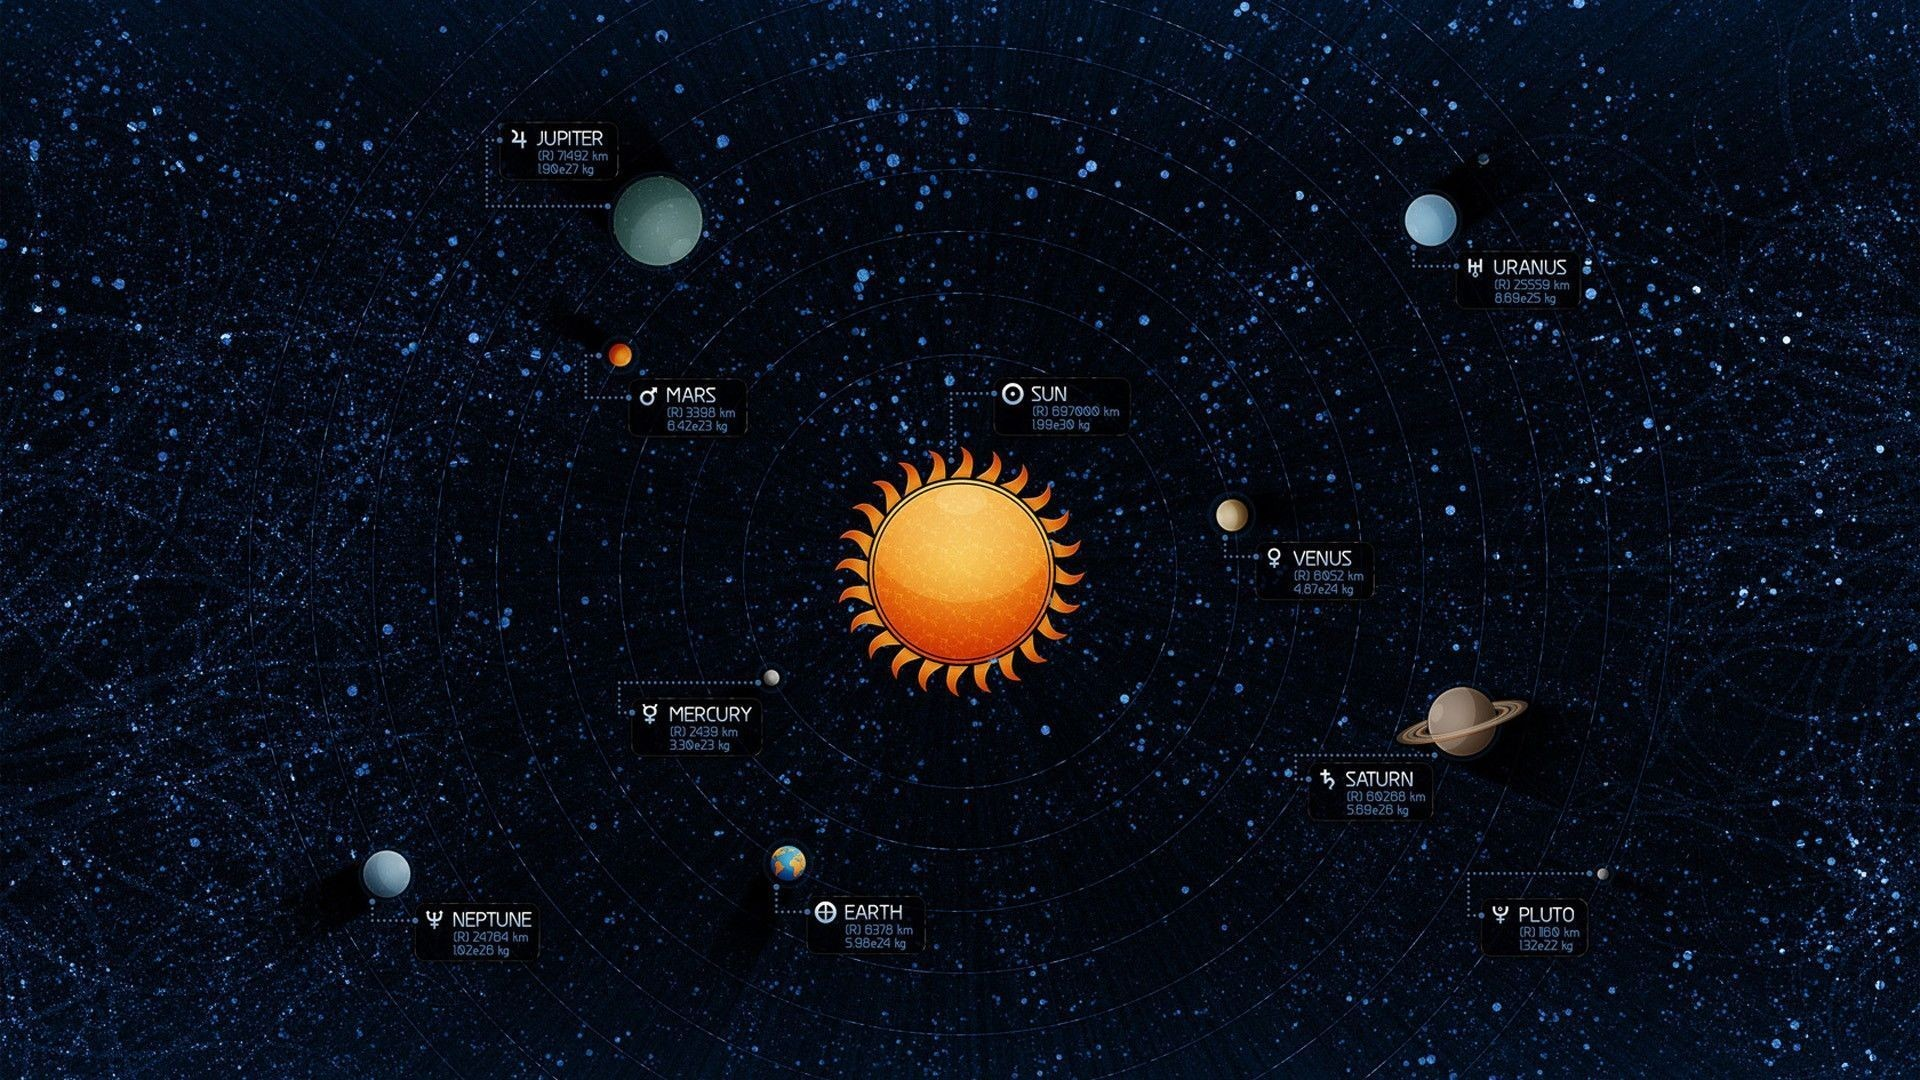 Download desktop wallpaper Solar system with the technical details